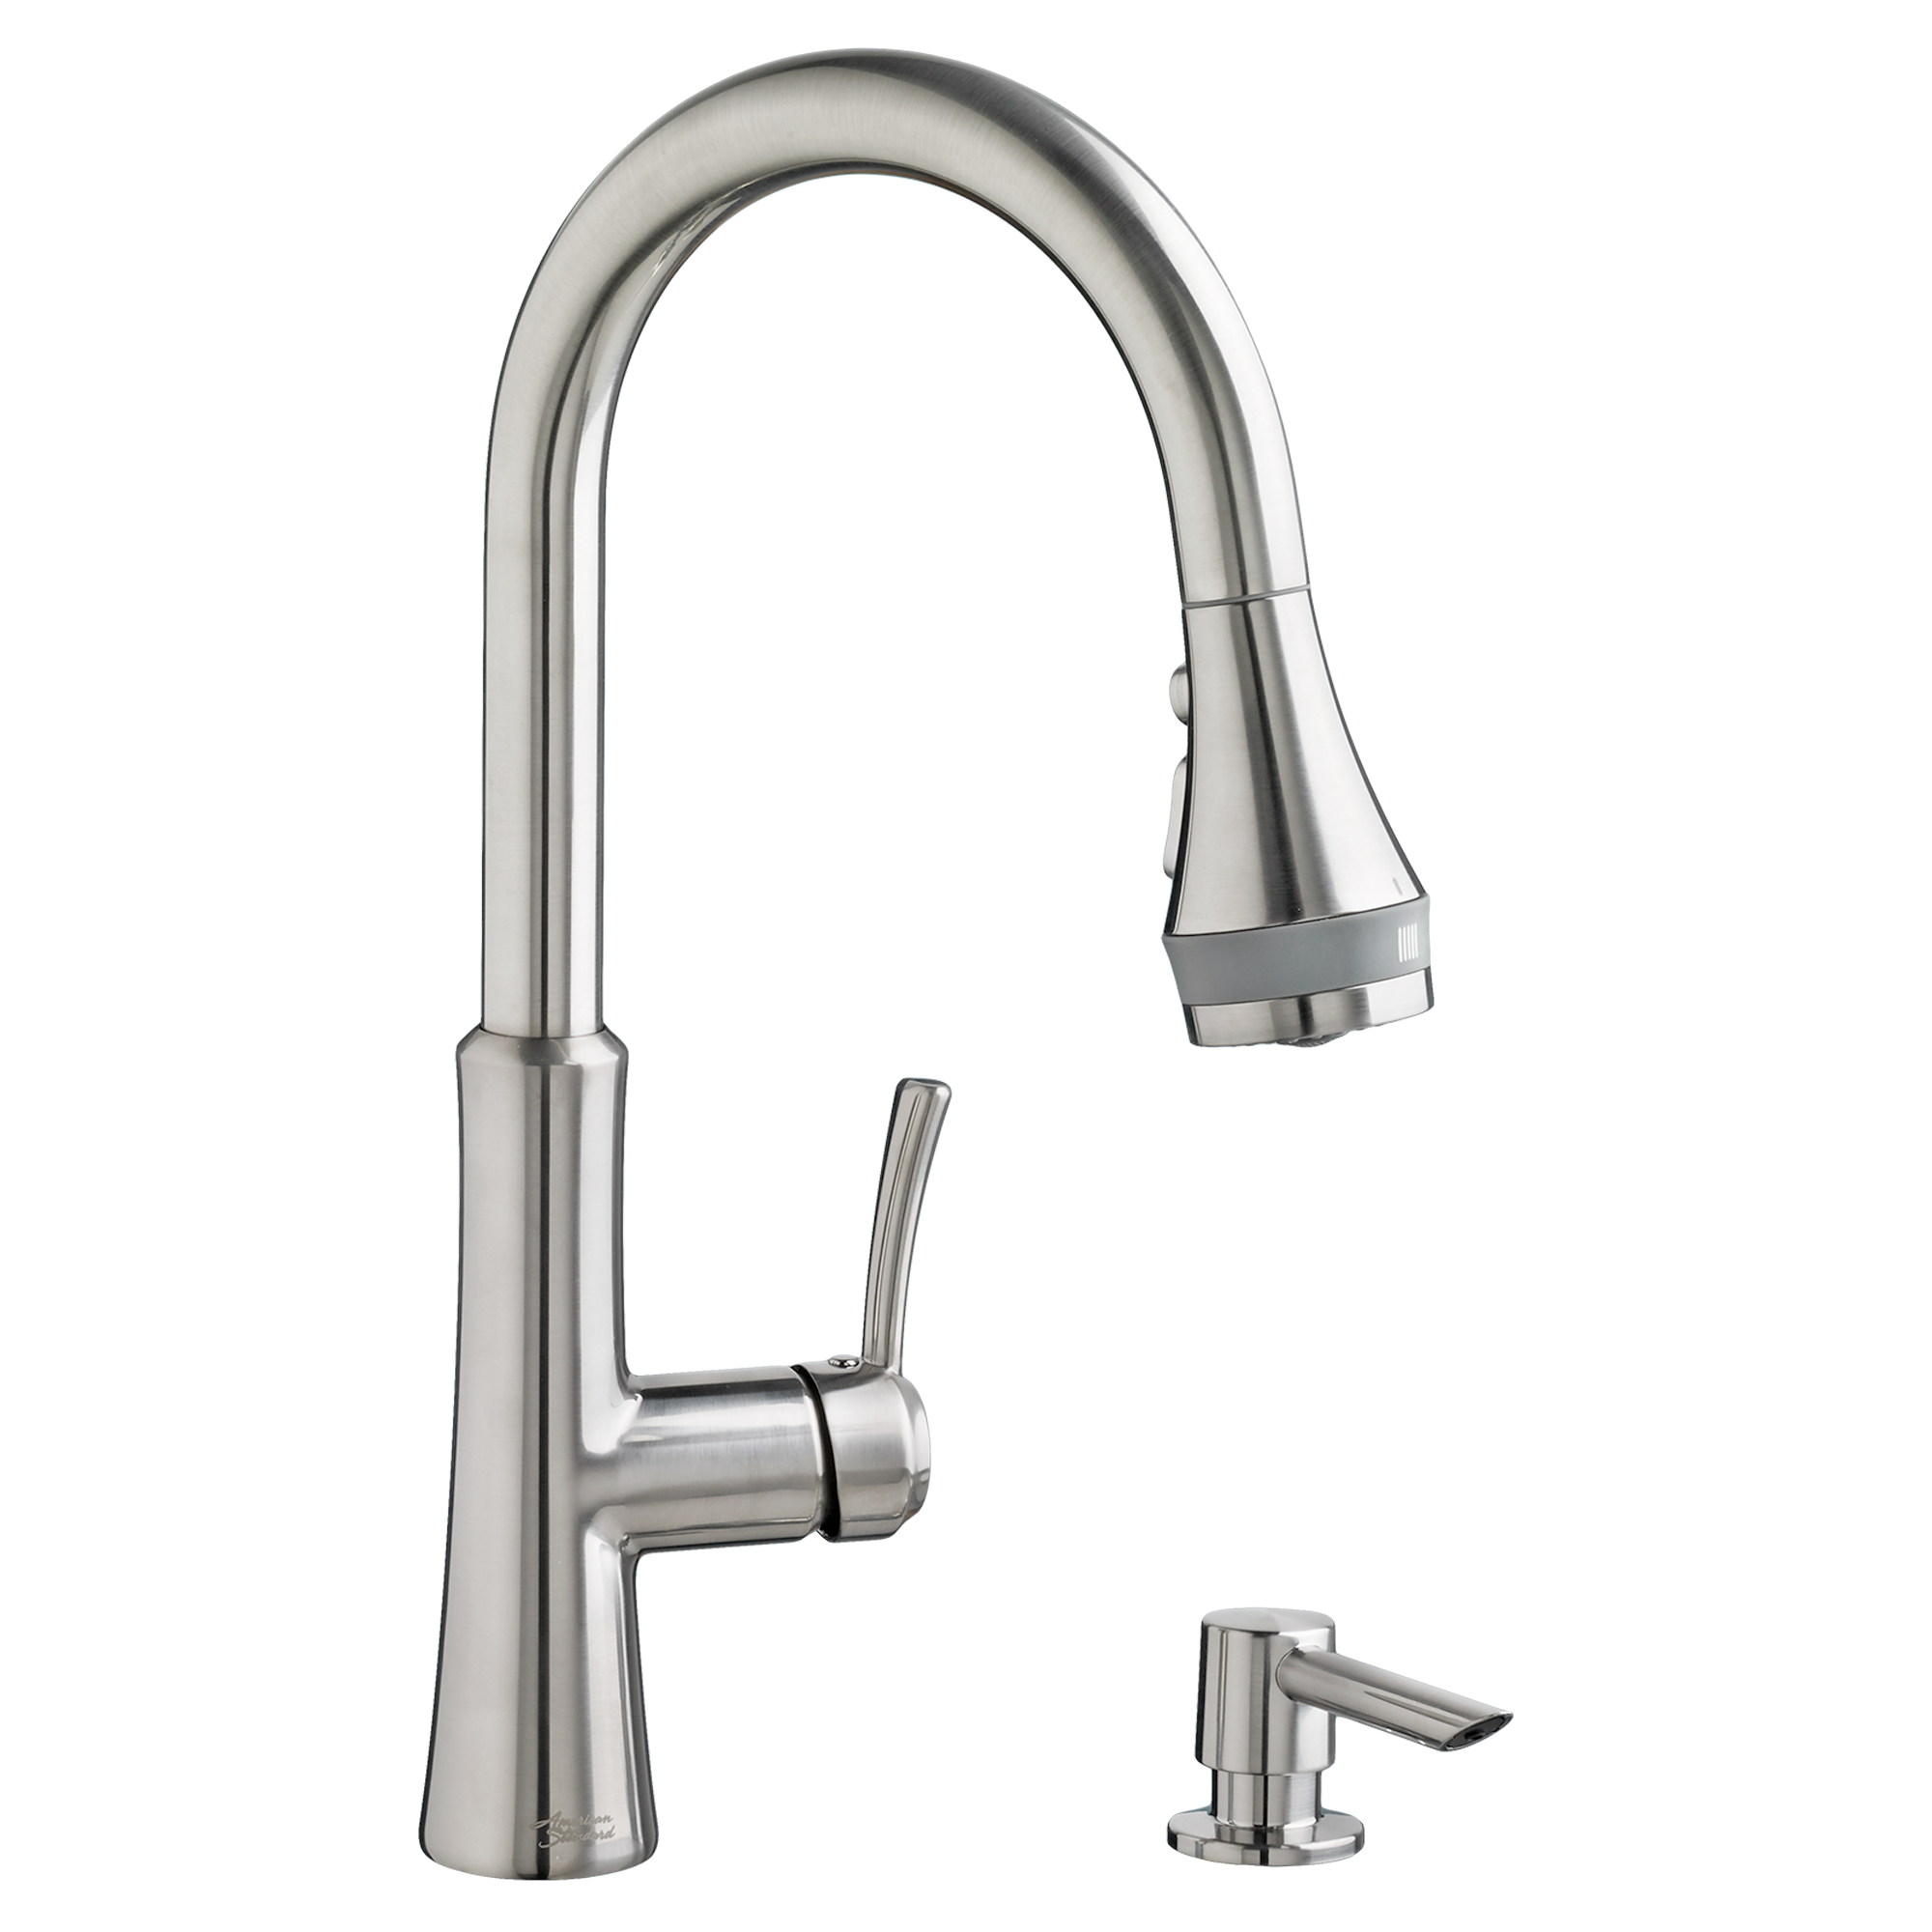 The Huntley Pull-Down Kitchen Faucet with SelectFlo offers ...